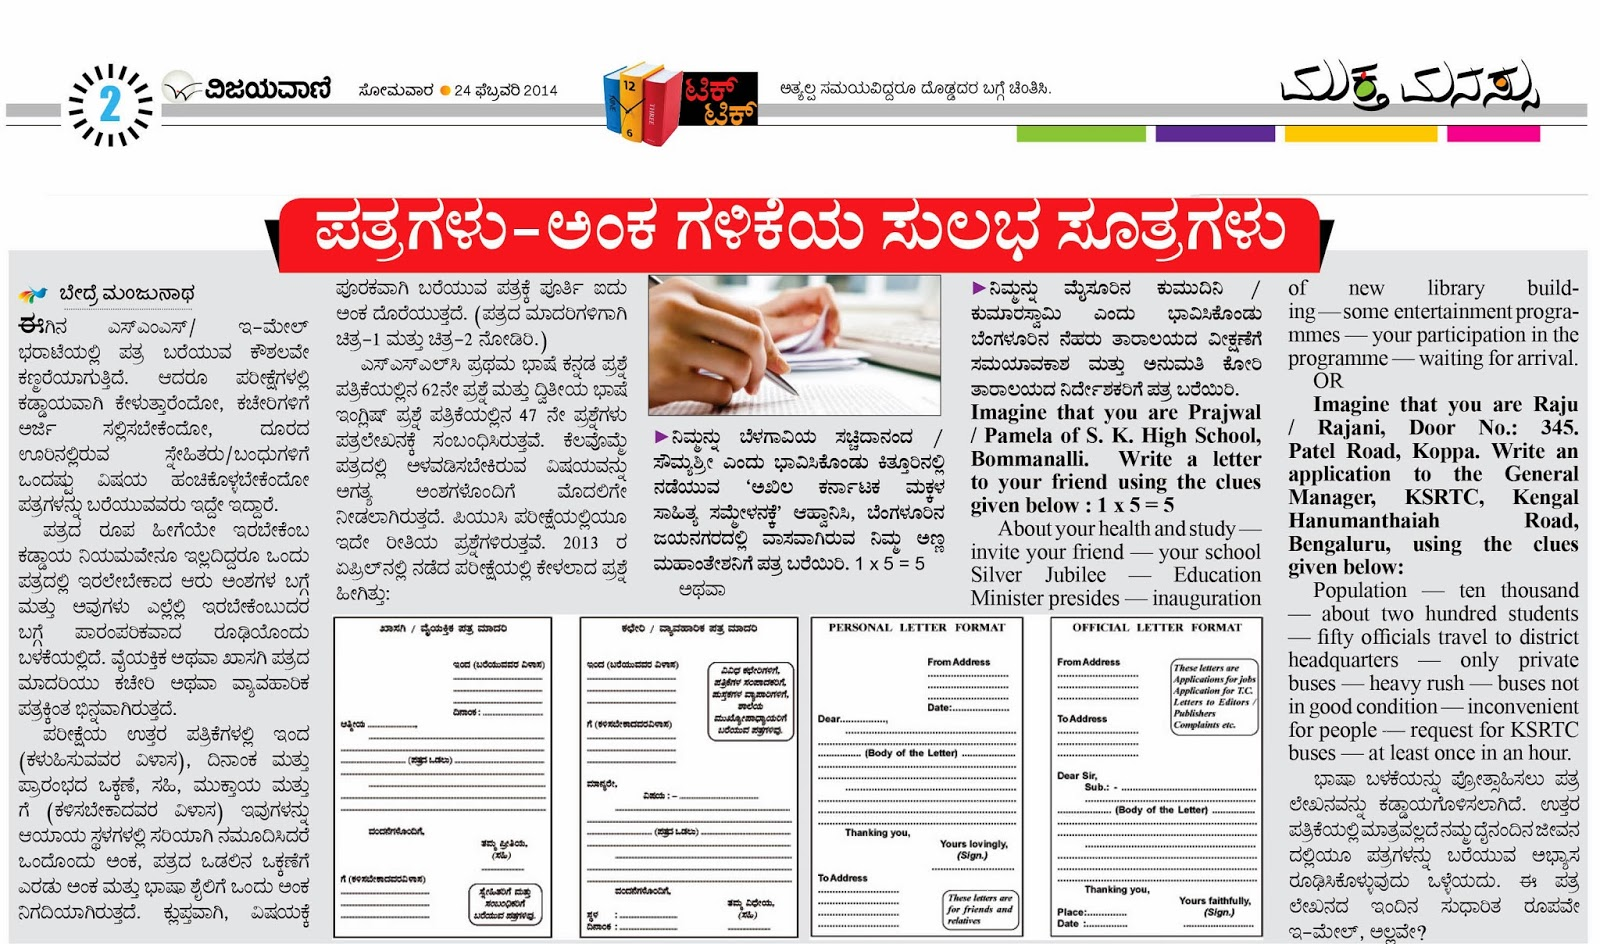 letter writing for sslc and puc students vijayavani student mitra 24 feb 2014